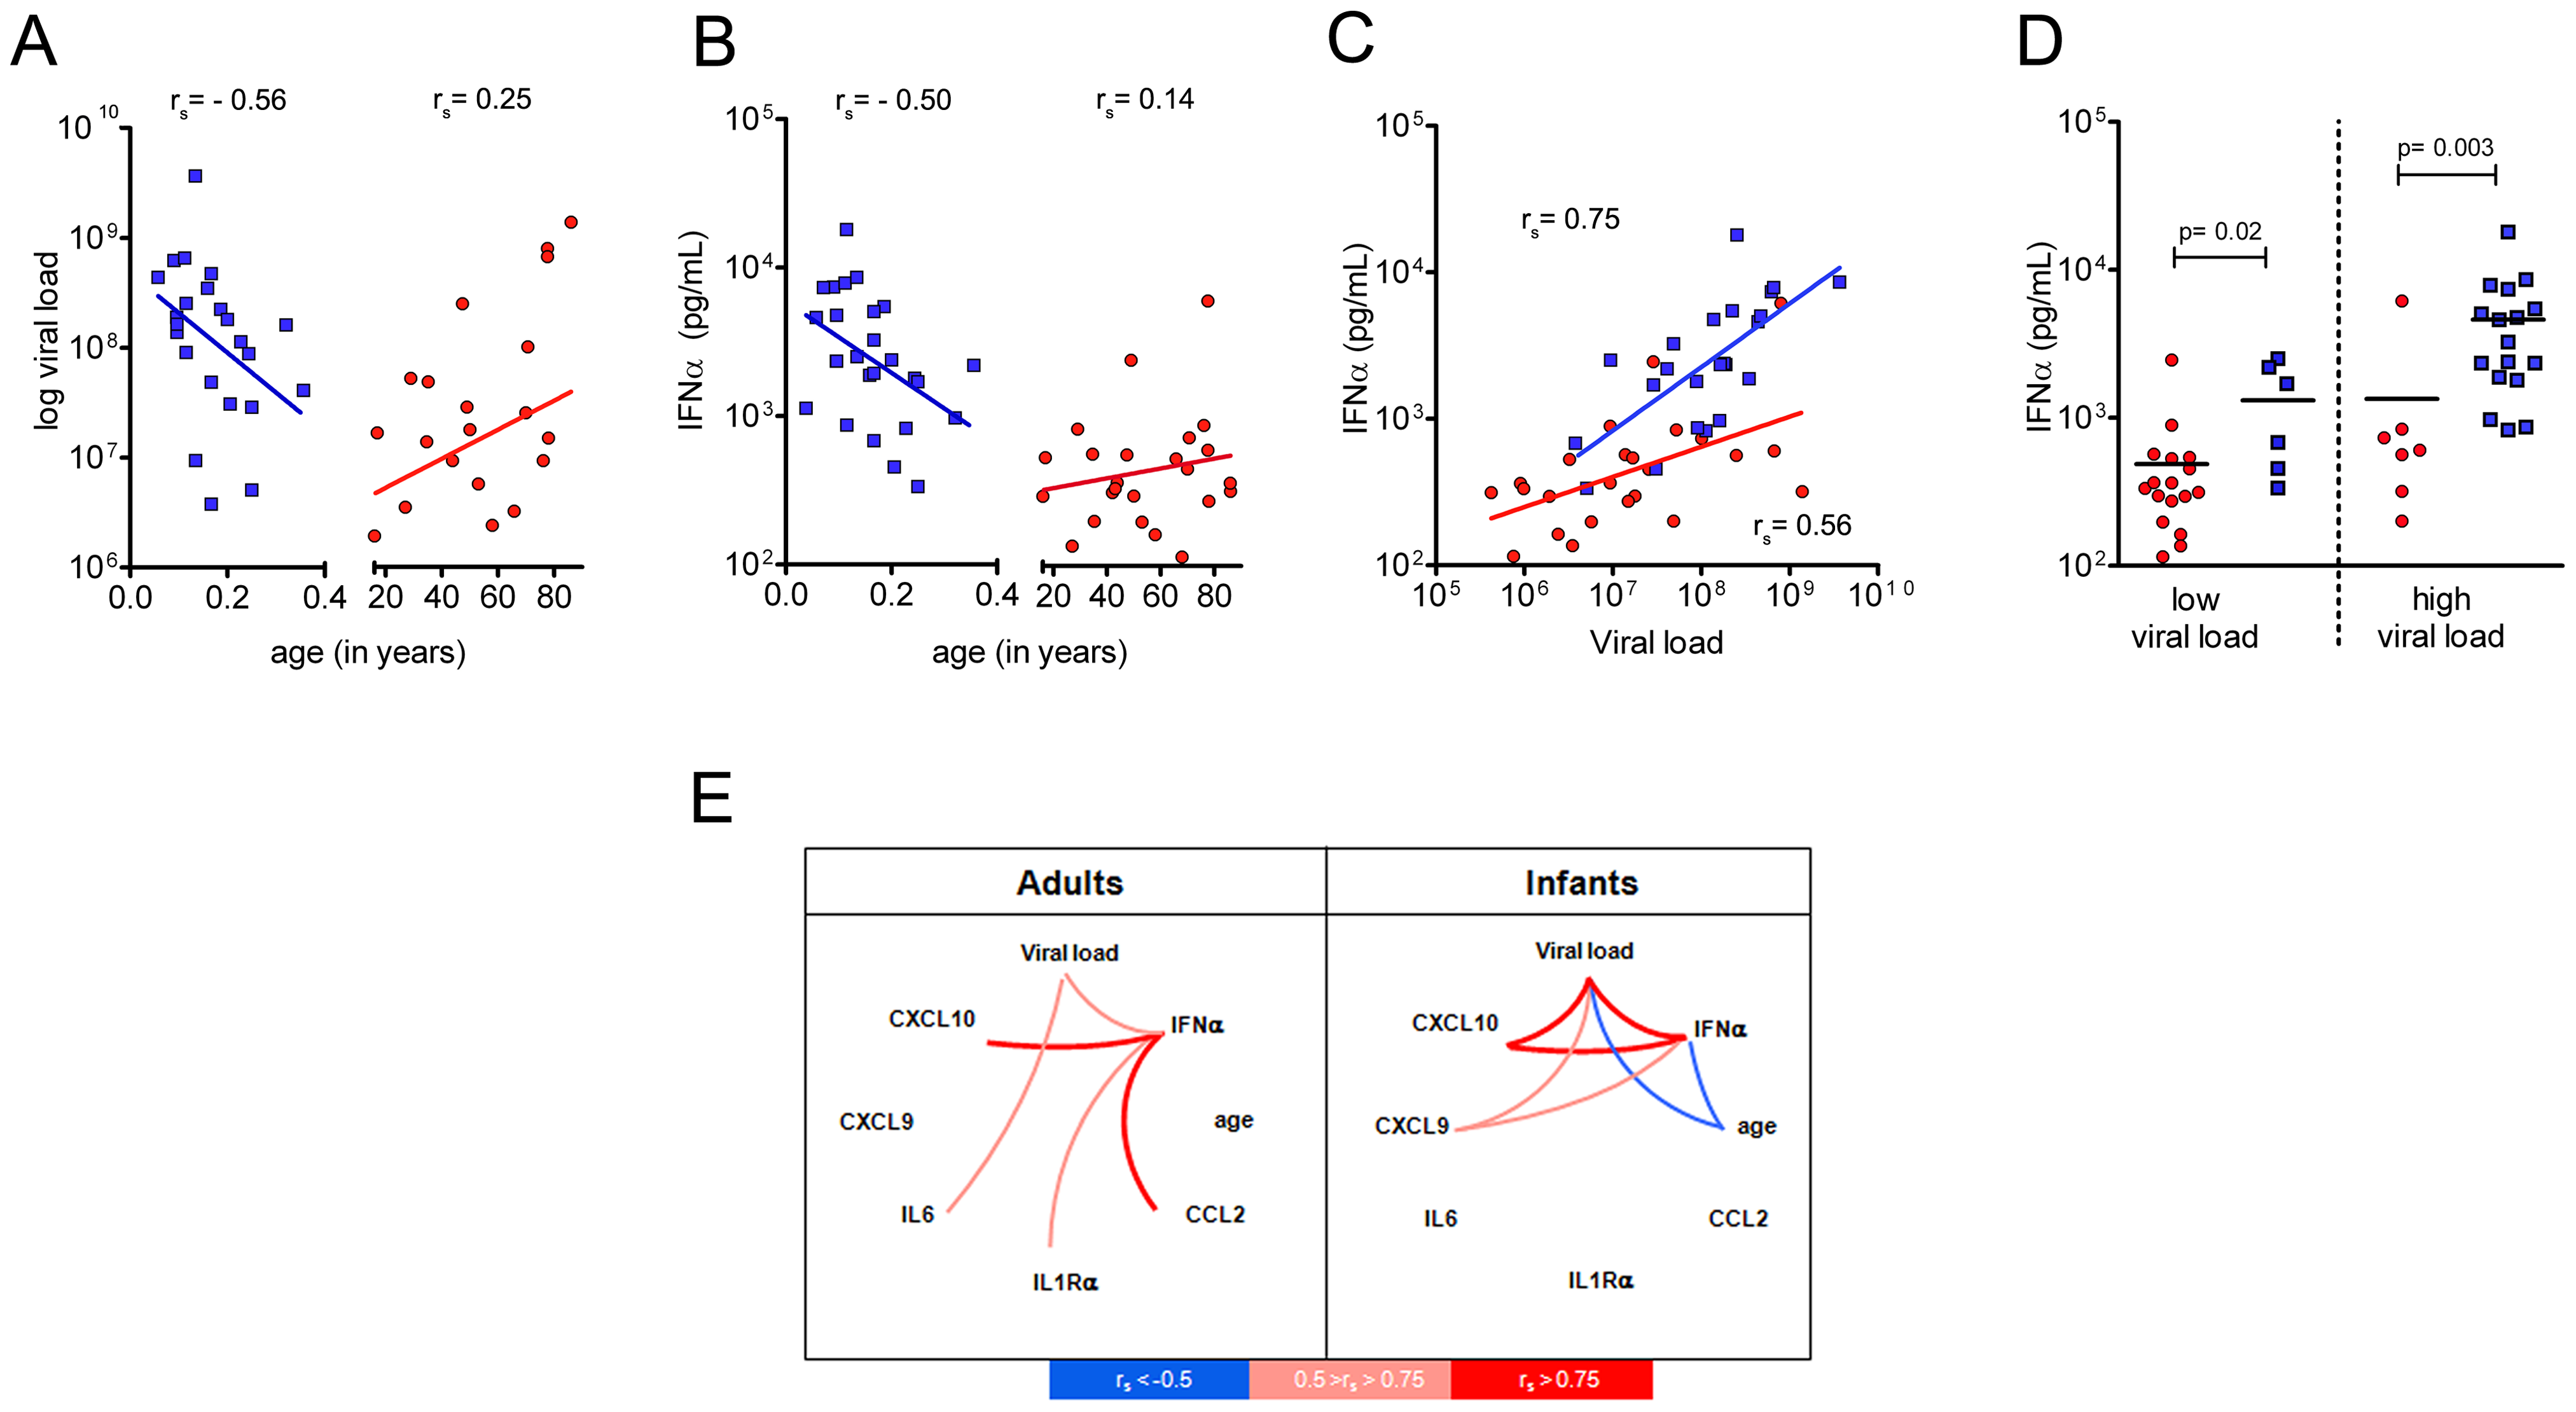 Higher serum IFNα in infants is not explained by differences in viral load.